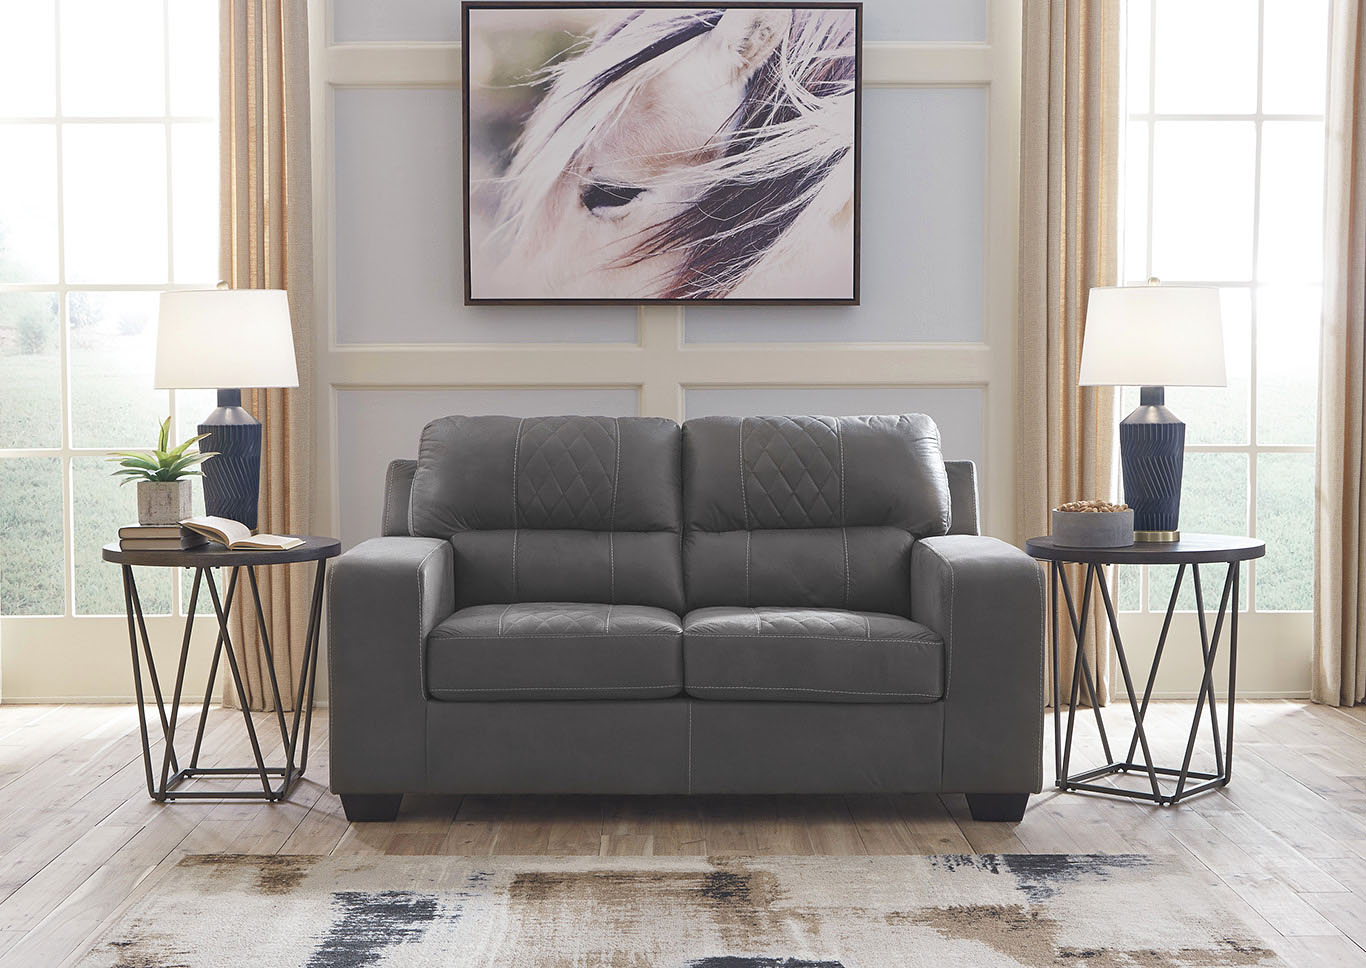 Narzole Dark Gray Loveseat,Benchcraft